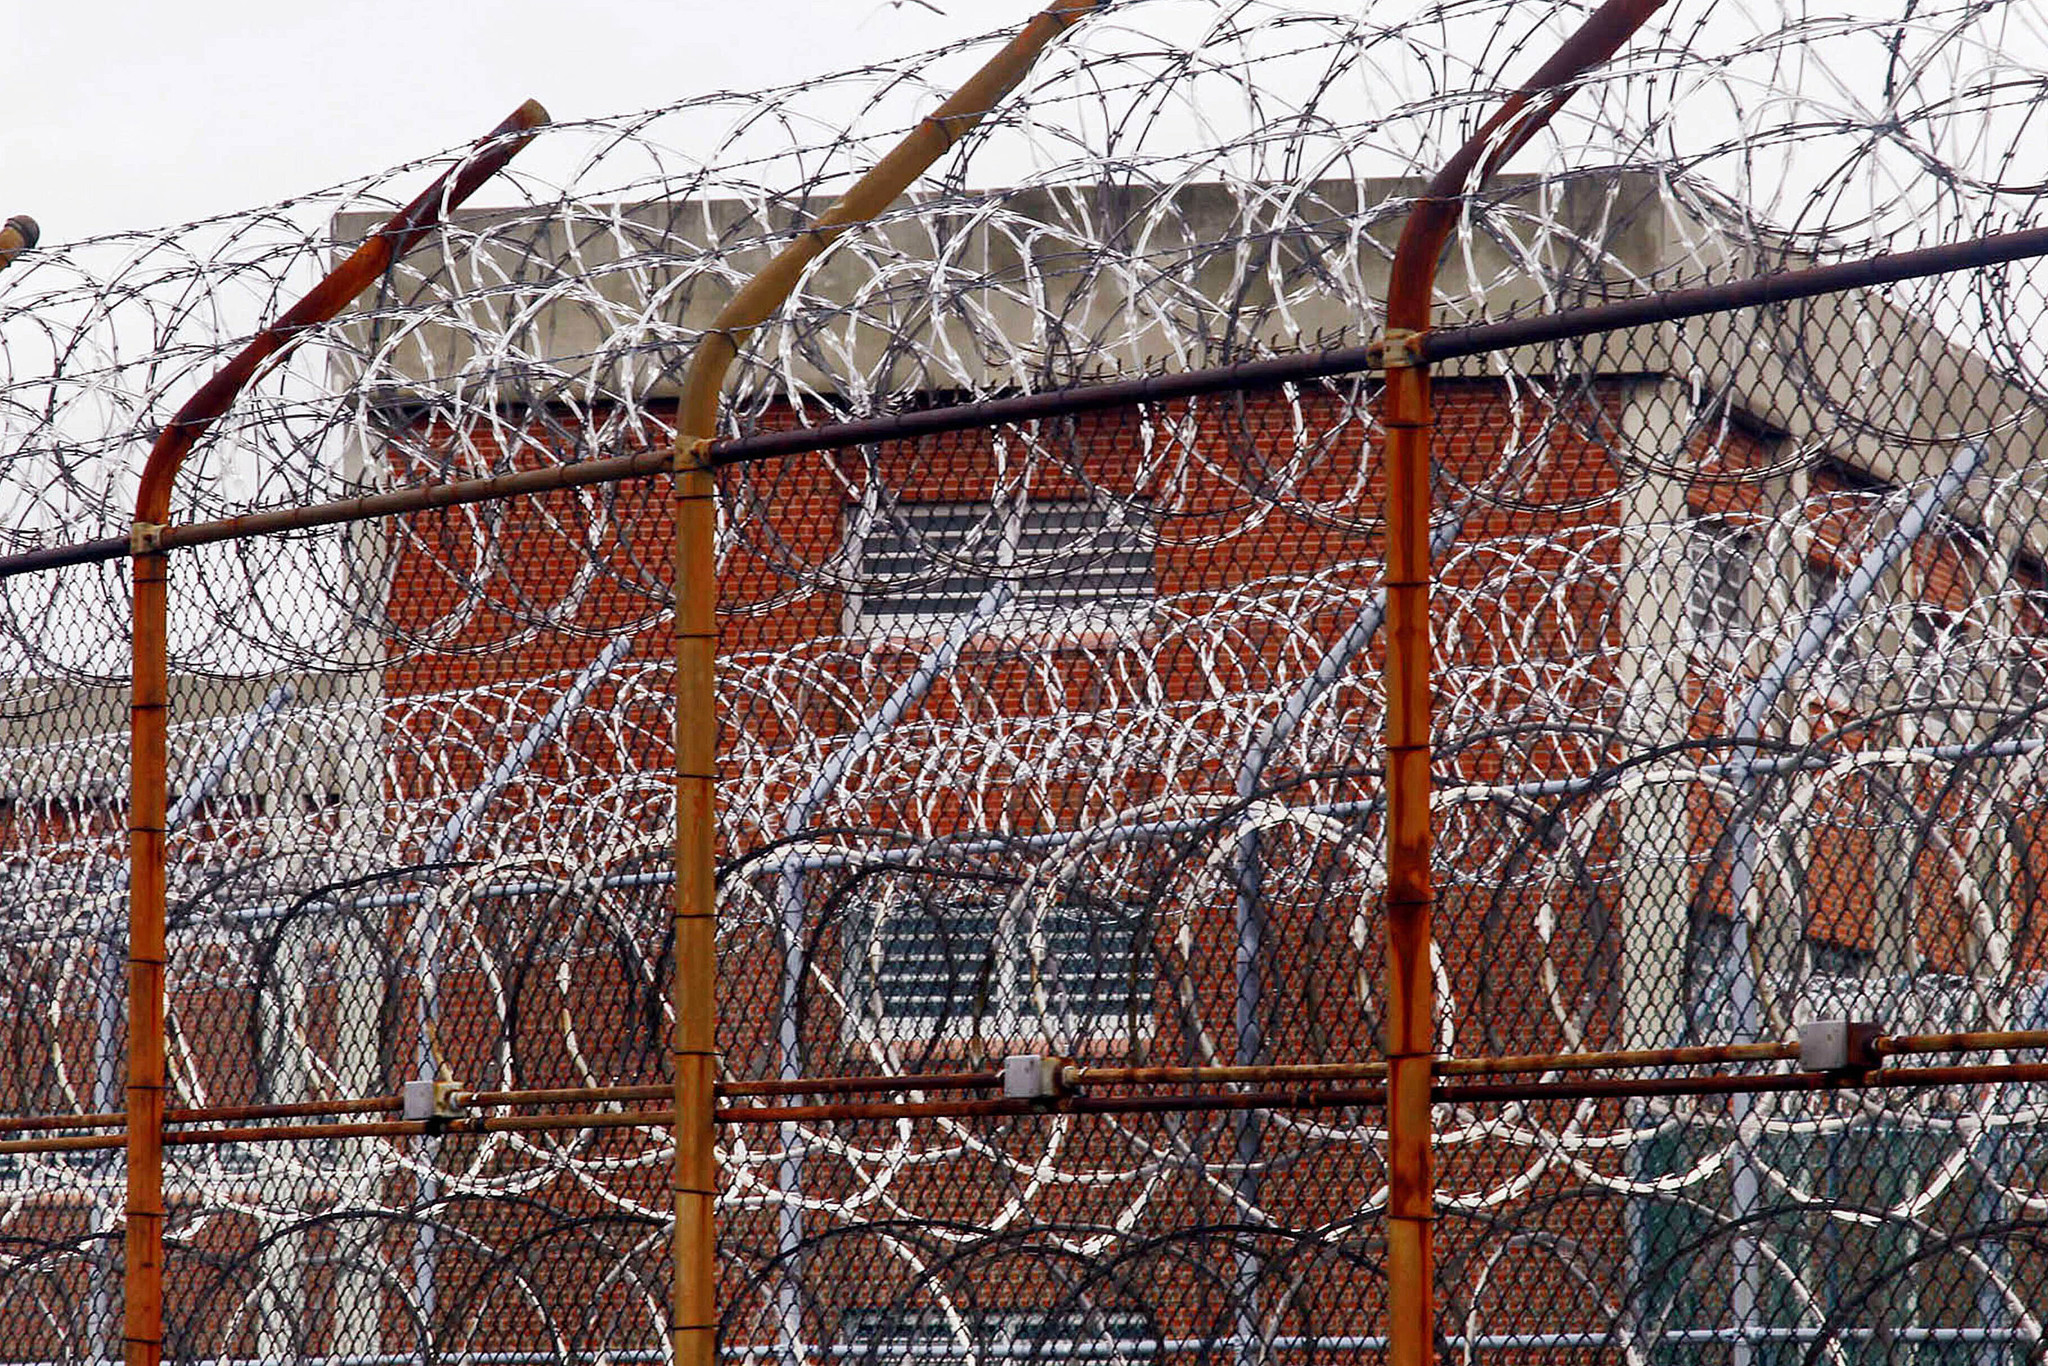 Coronavirus continues to spread in NYC jails despite dwindling inmate population